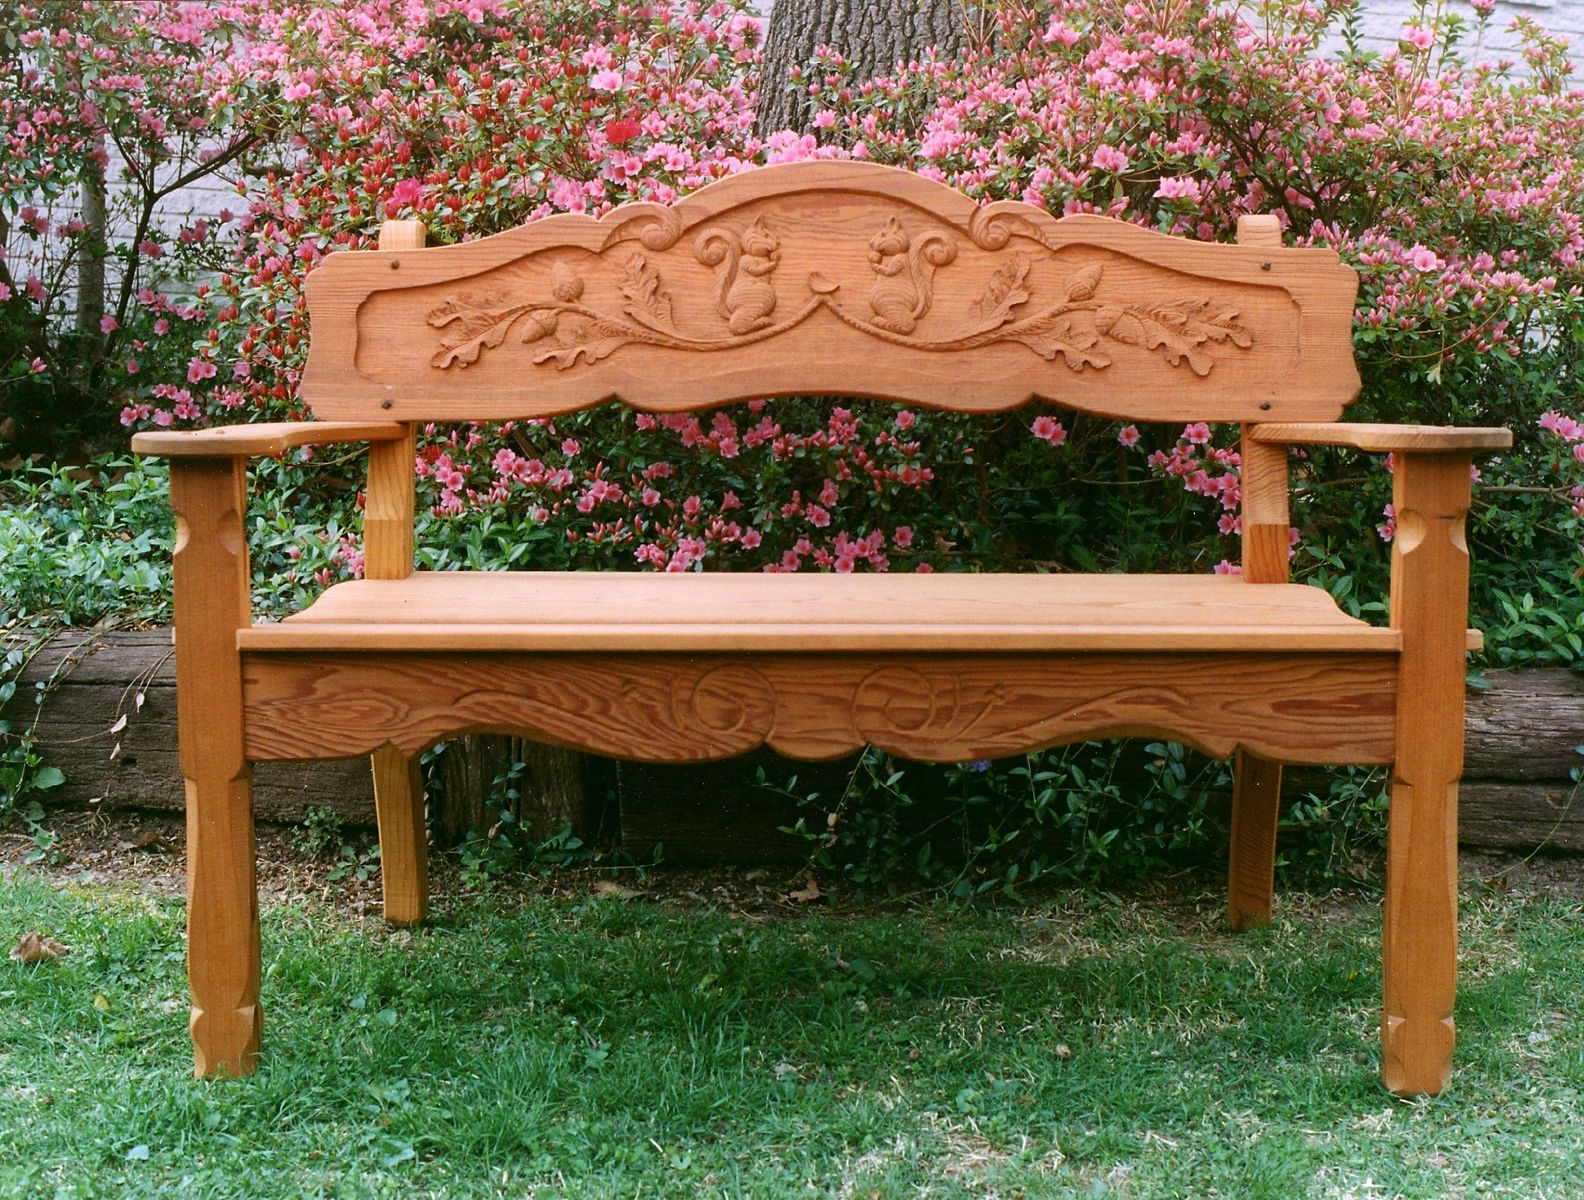 buy a hand made handcarved cyprus or mahogany garden bench made to order from grayson artistry in wood custommadecom